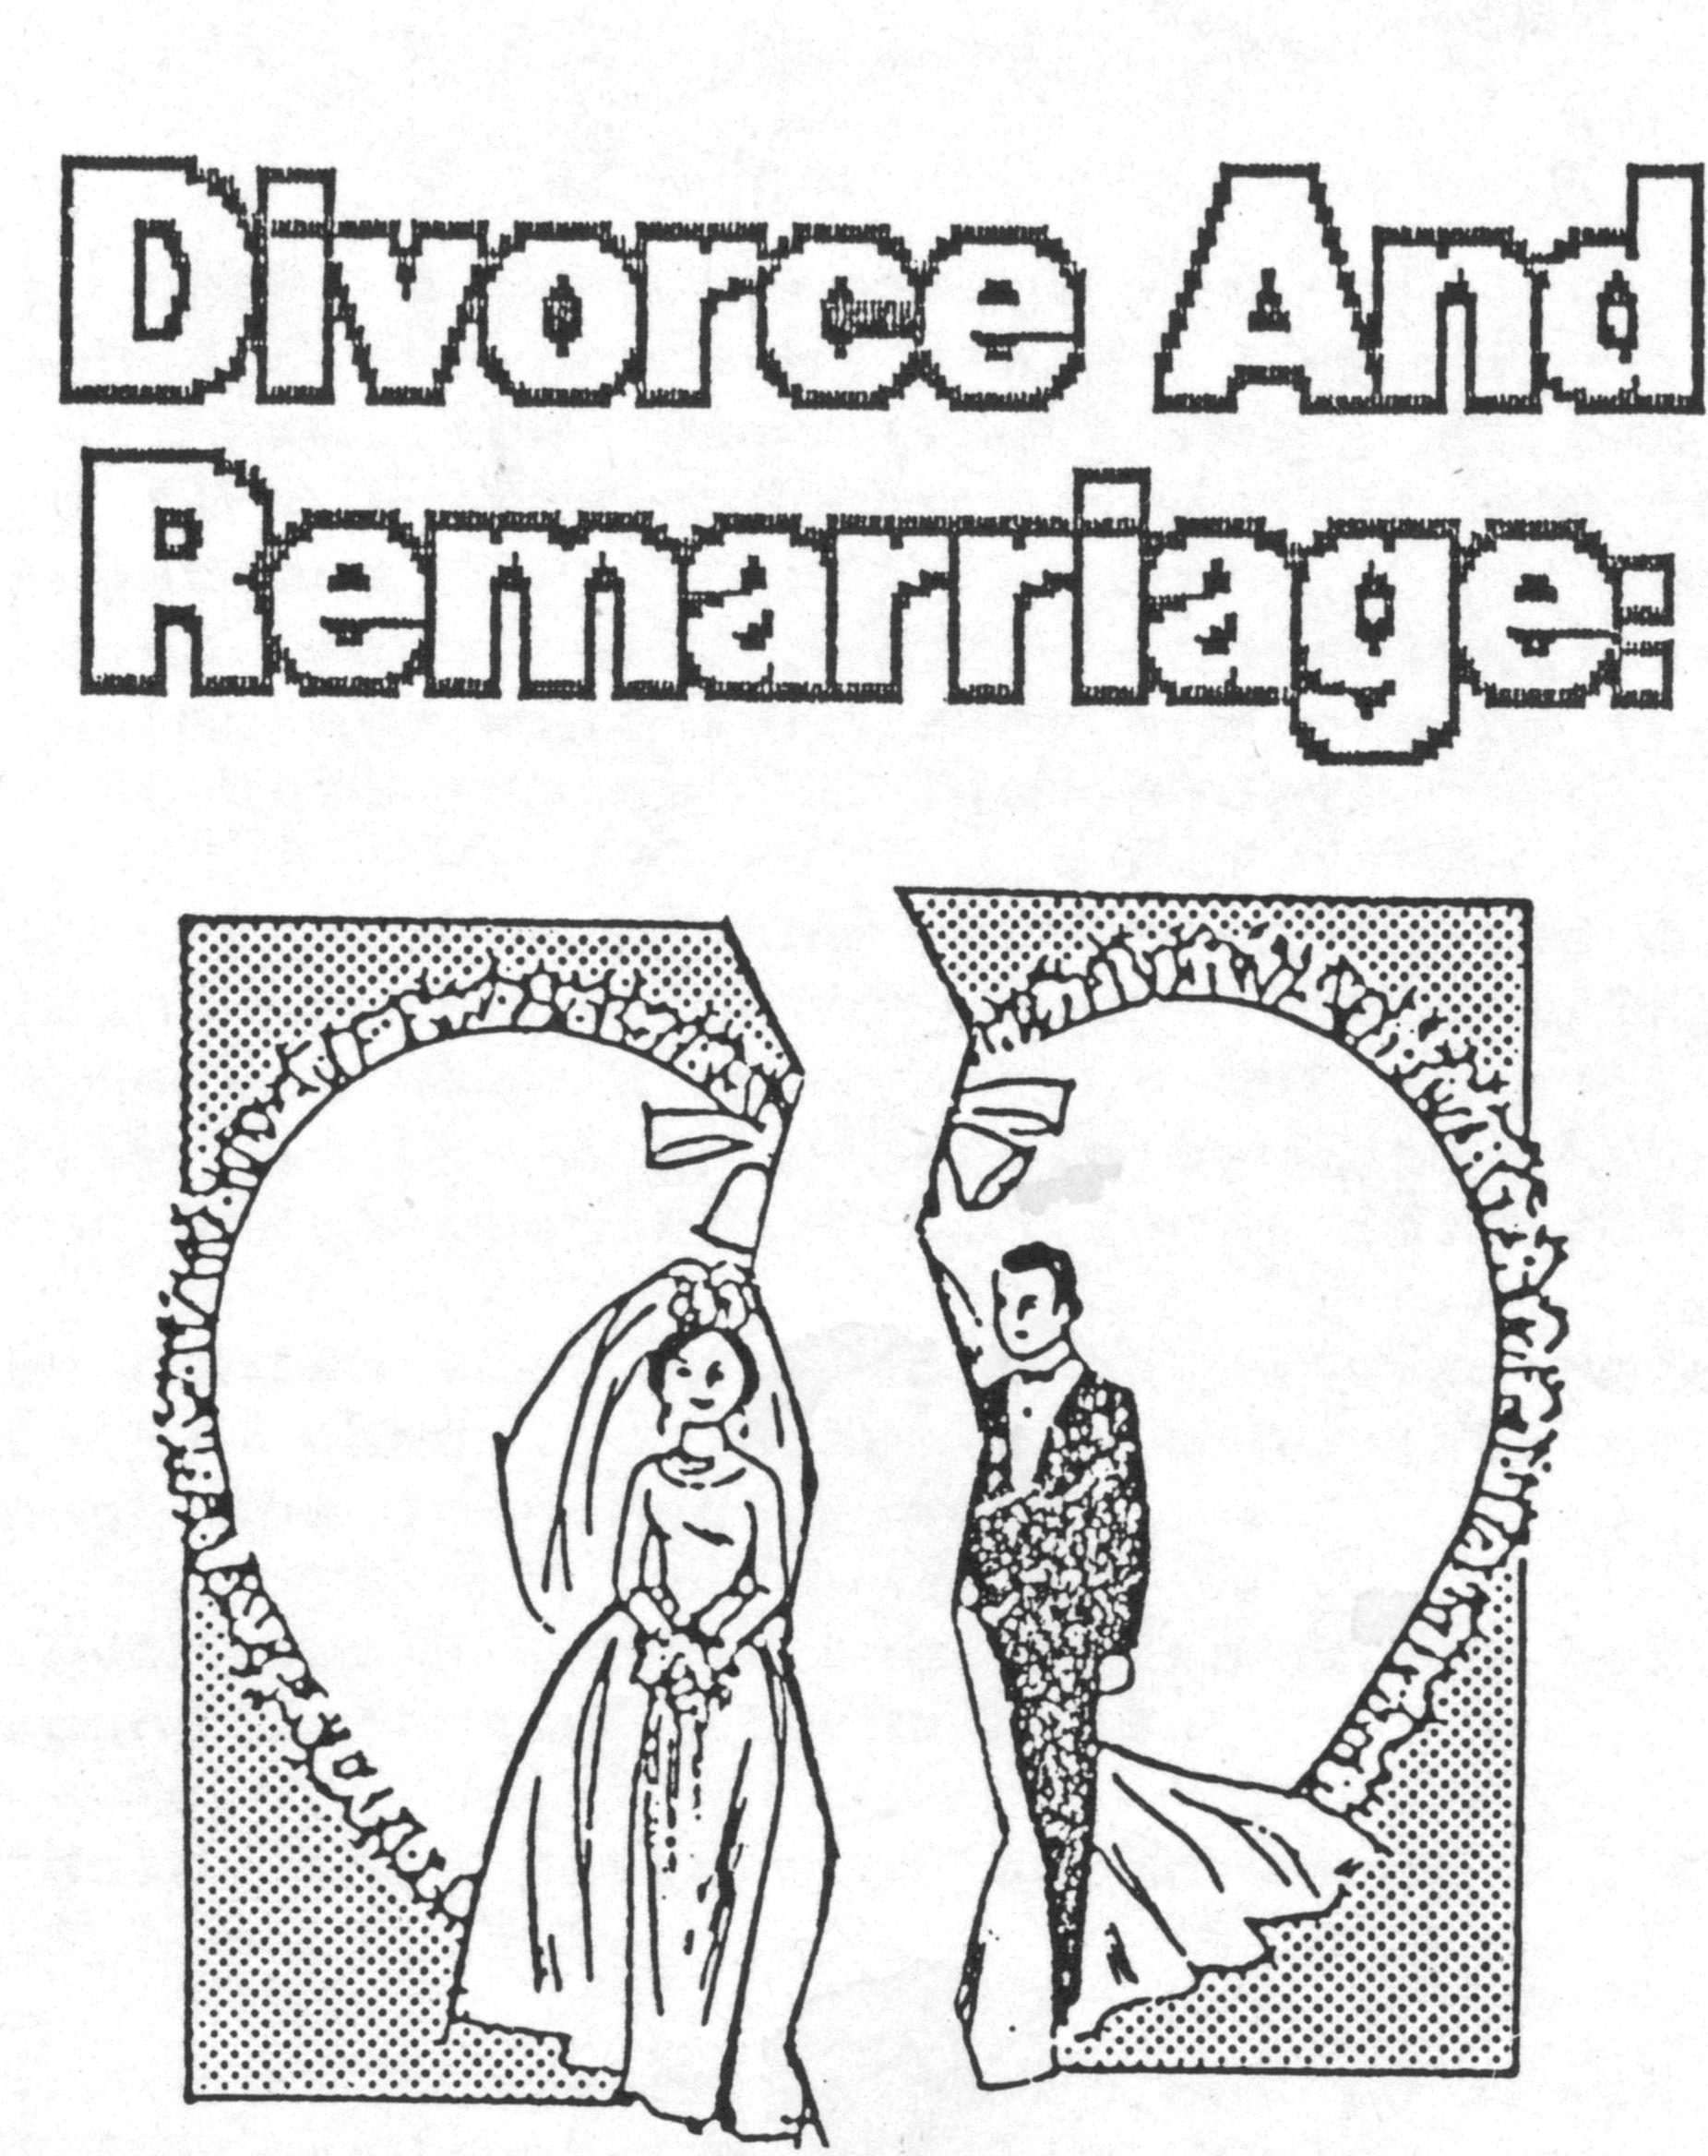 Emotional Arguments About Marriage, Divorce, and Remarriage